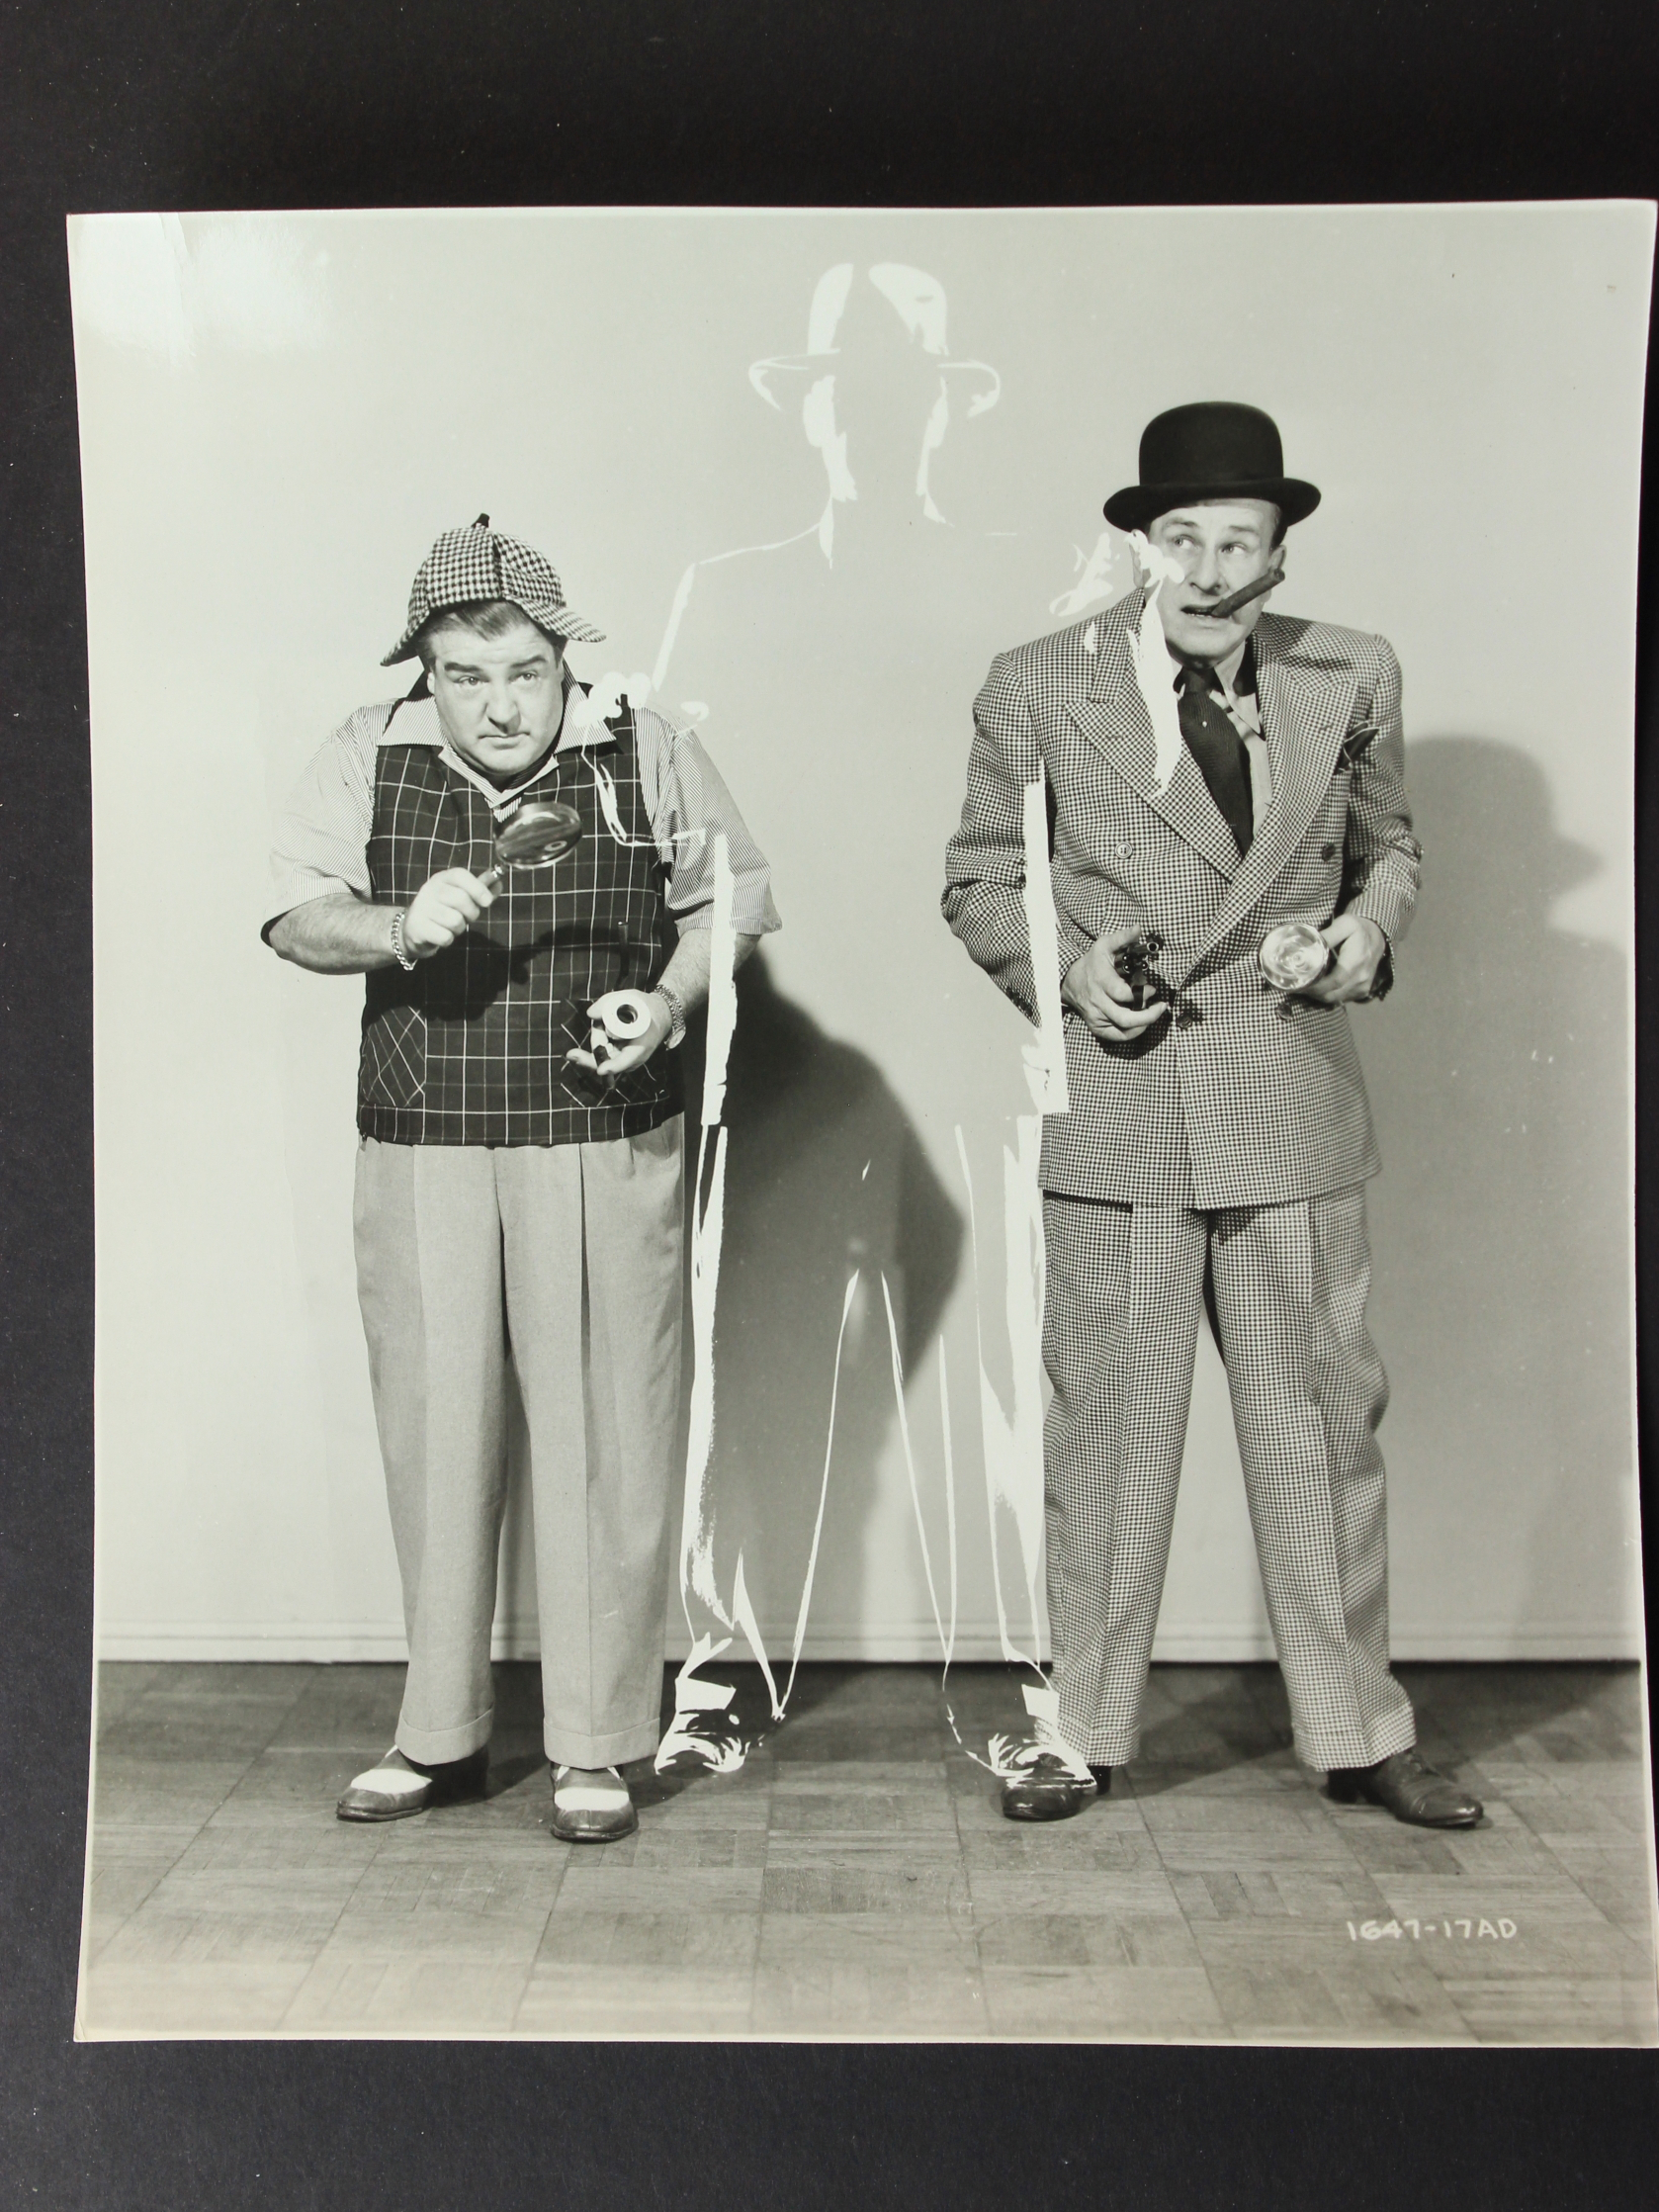 Bud Abbott and Lou Costello in Bud Abbott and Lou Costello Meet the Invisible Man (1951)